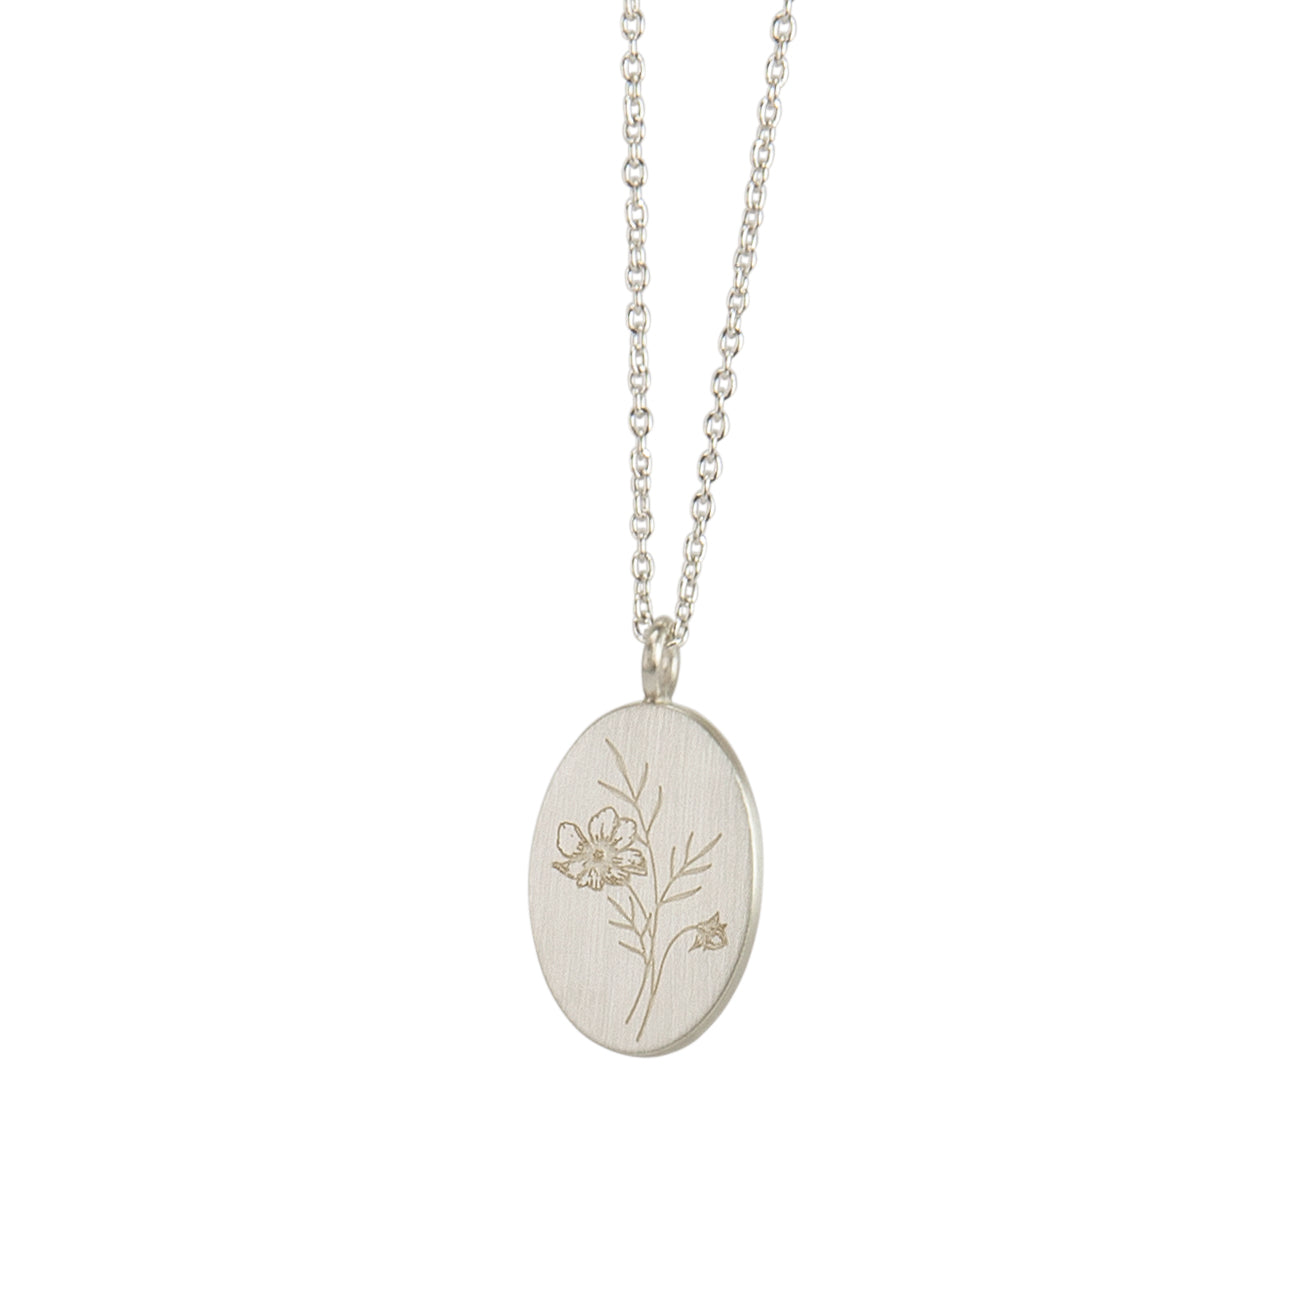 Follow the Flowers Silver Pendant